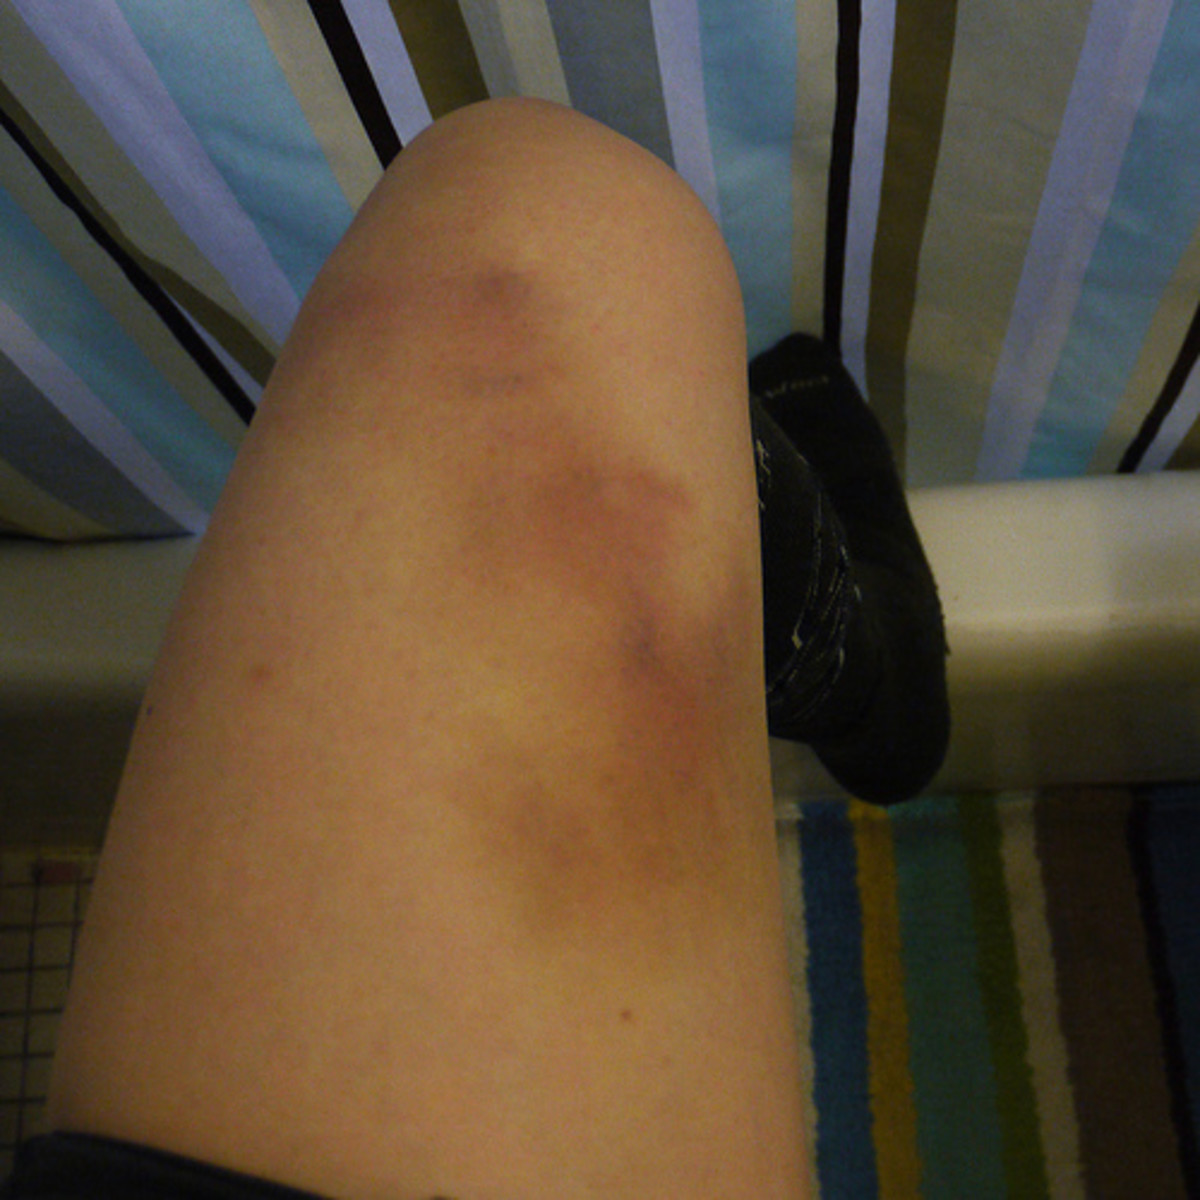 Any bruises or marks should be photographed.